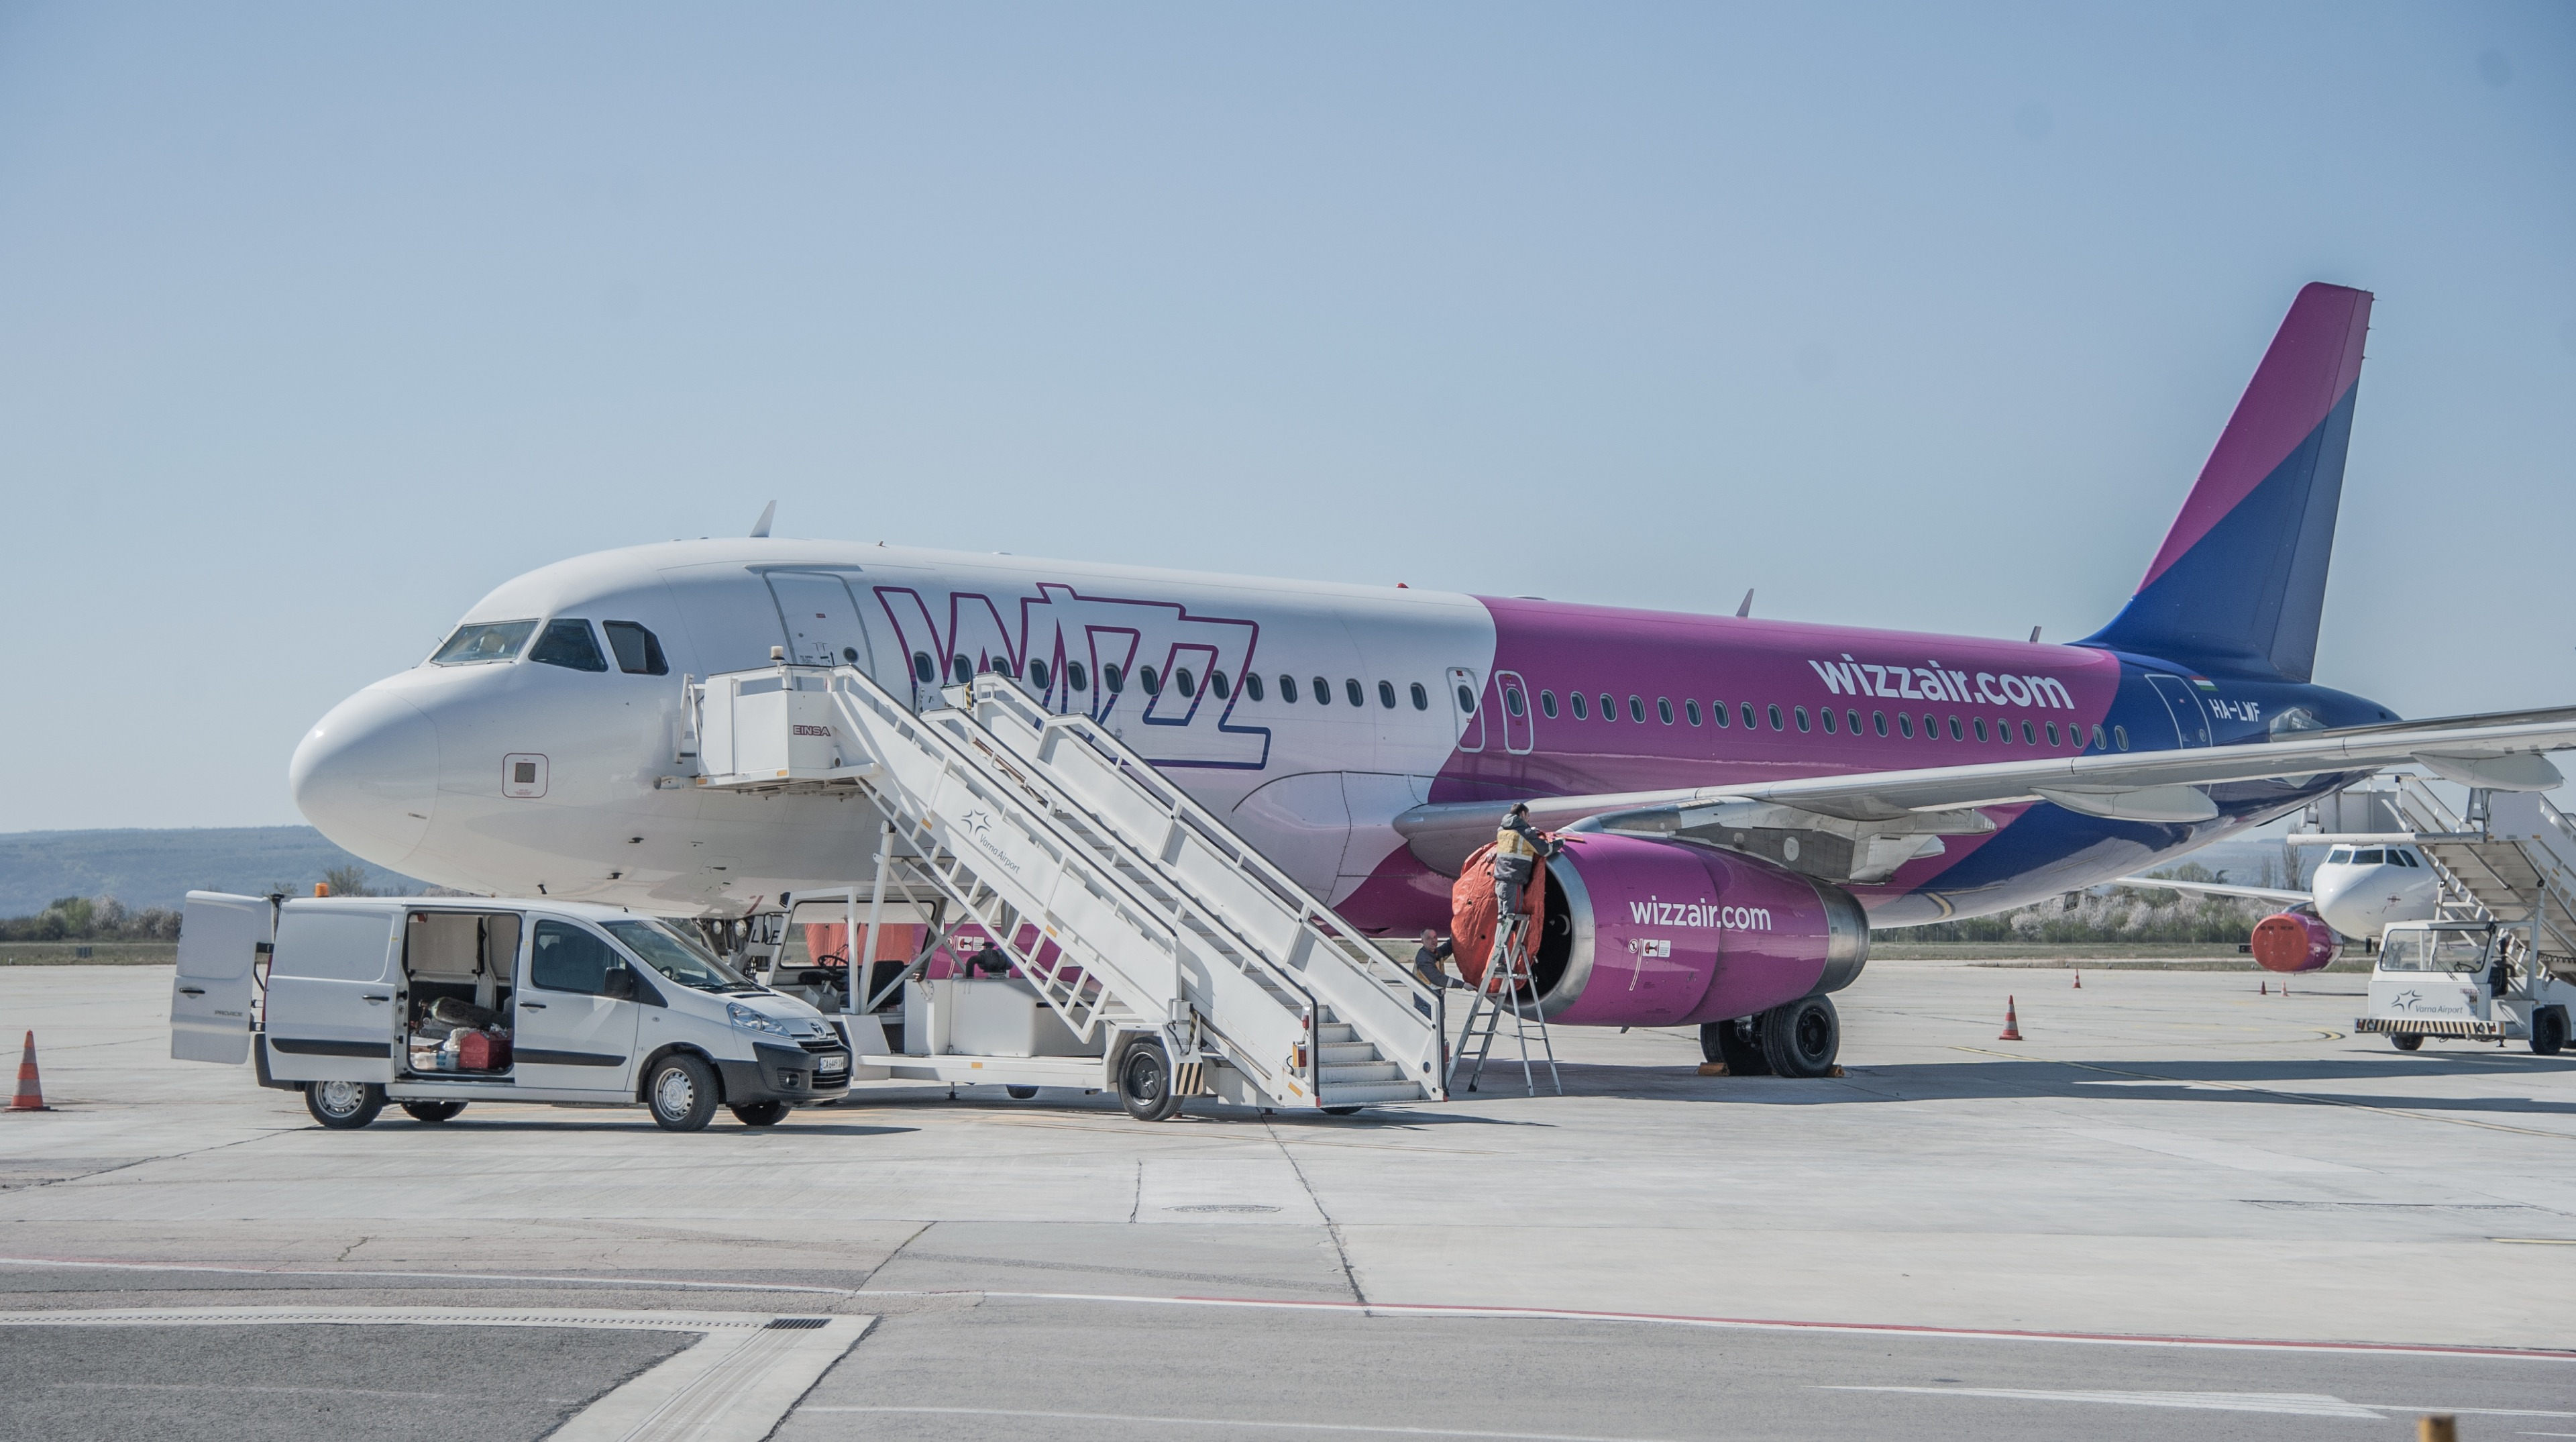 Wizz Air Resumes Flights From Luton Airport With Enhanced Health And Safety Measures Anglia Itv News